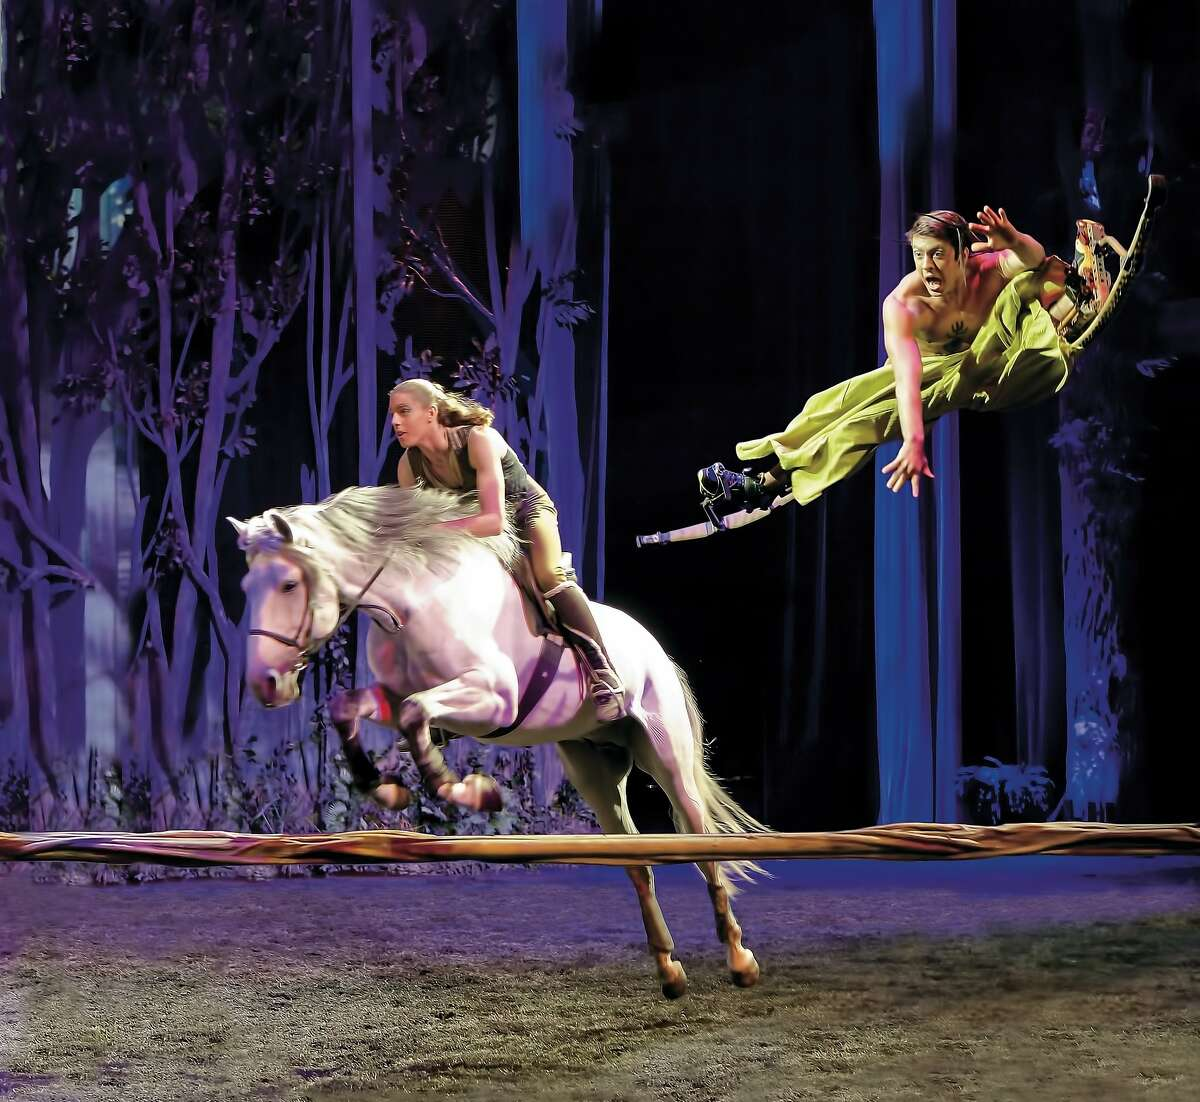 """Like """"Cavalia"""" before it, """"Odysseo"""" incorporates acrobatics with equestrian feats. The massive touring show continues through Dec. 13 under the white big top at AT&T Park. Photo courtesy of Odysseo"""